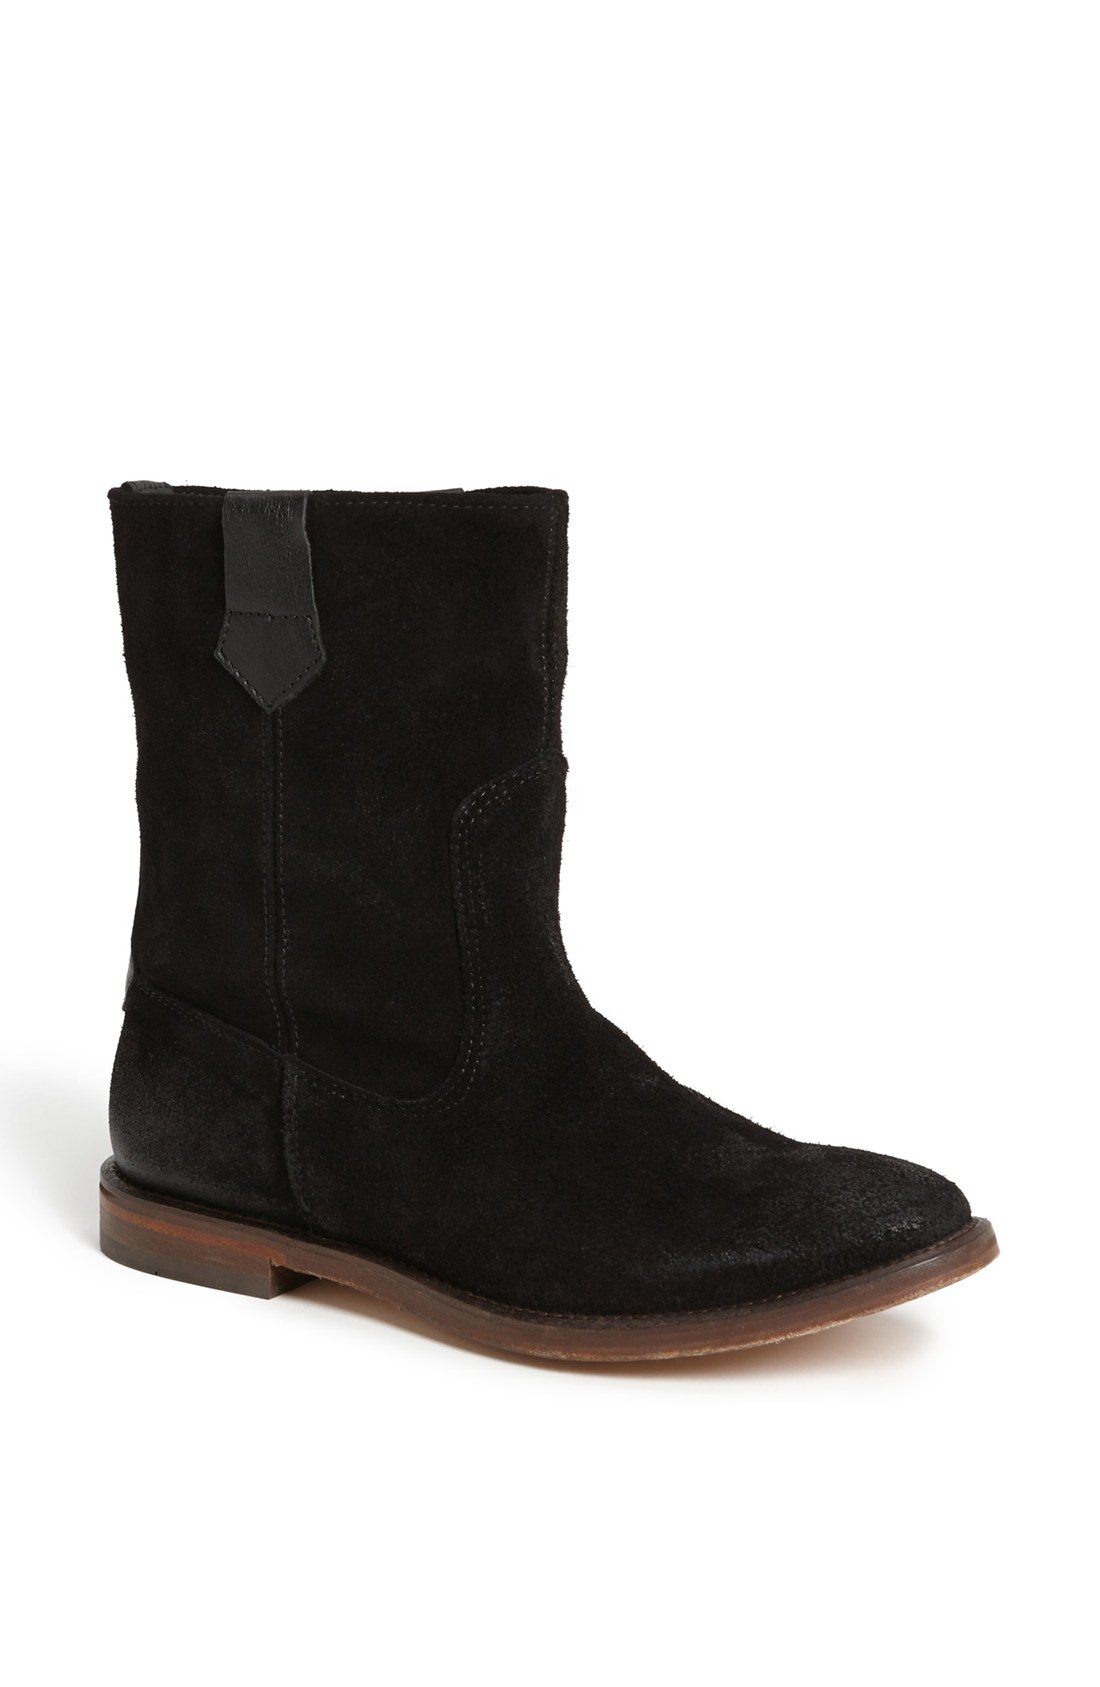 h by hudson hanwell slouchy suede boot in black lyst